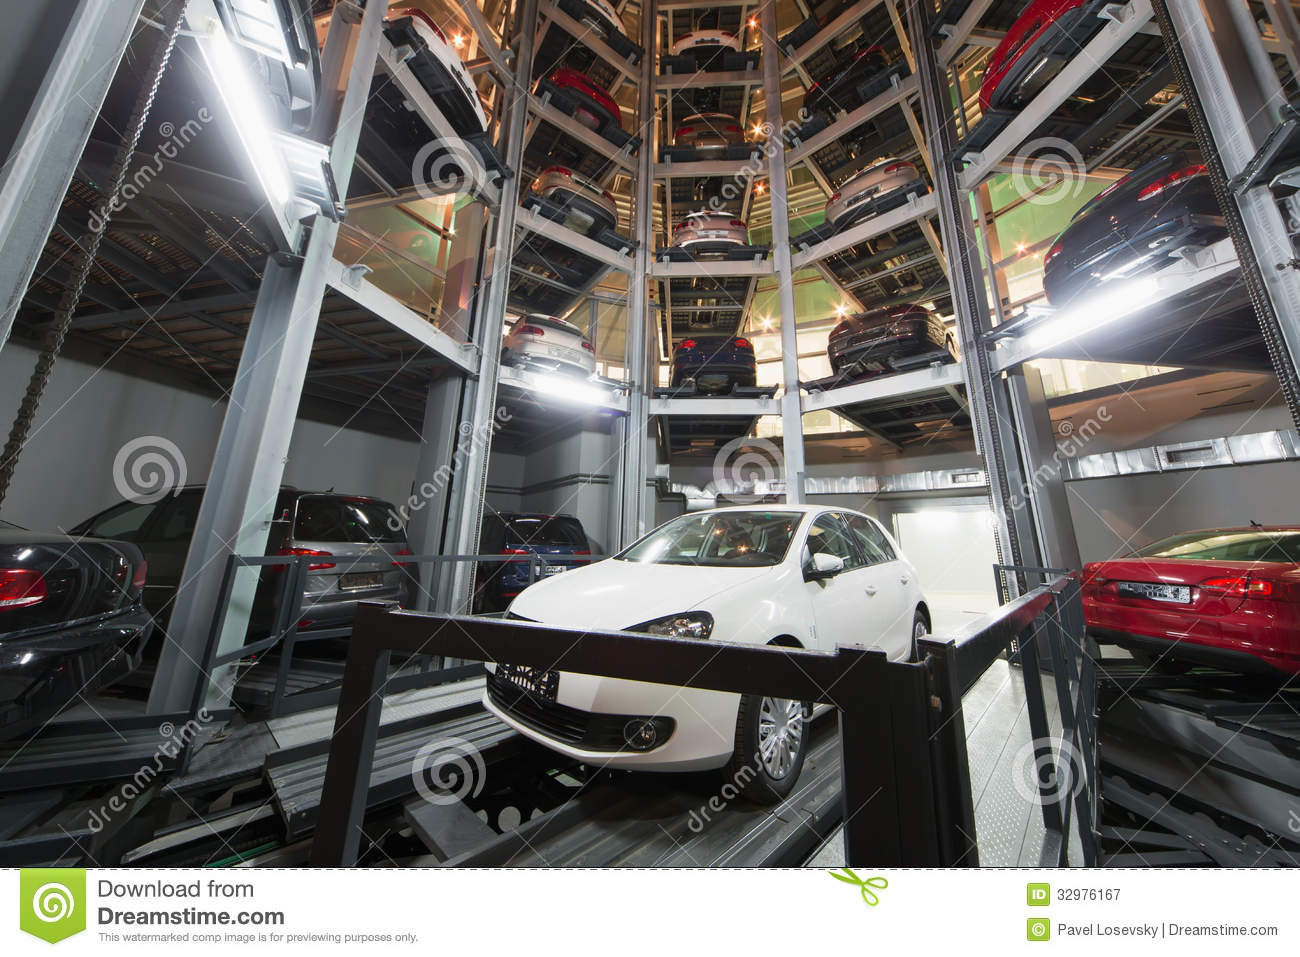 The Car On Parking Lot With Automated Car Parking System